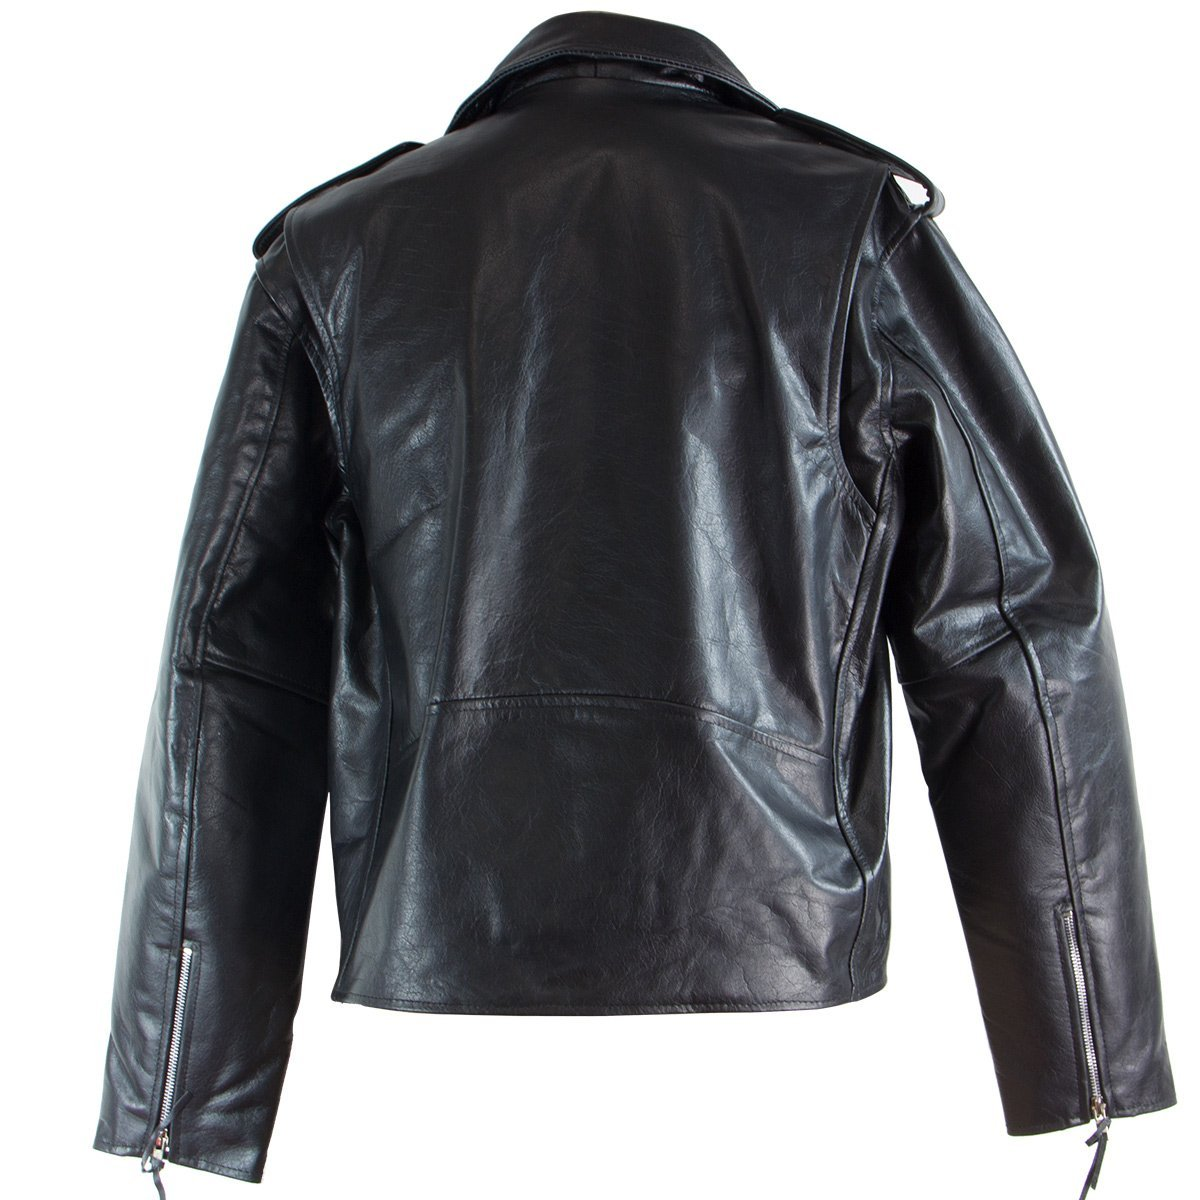 Black-TOP-GRADE-Leather-Motorcycle-Biker-Jacket-5